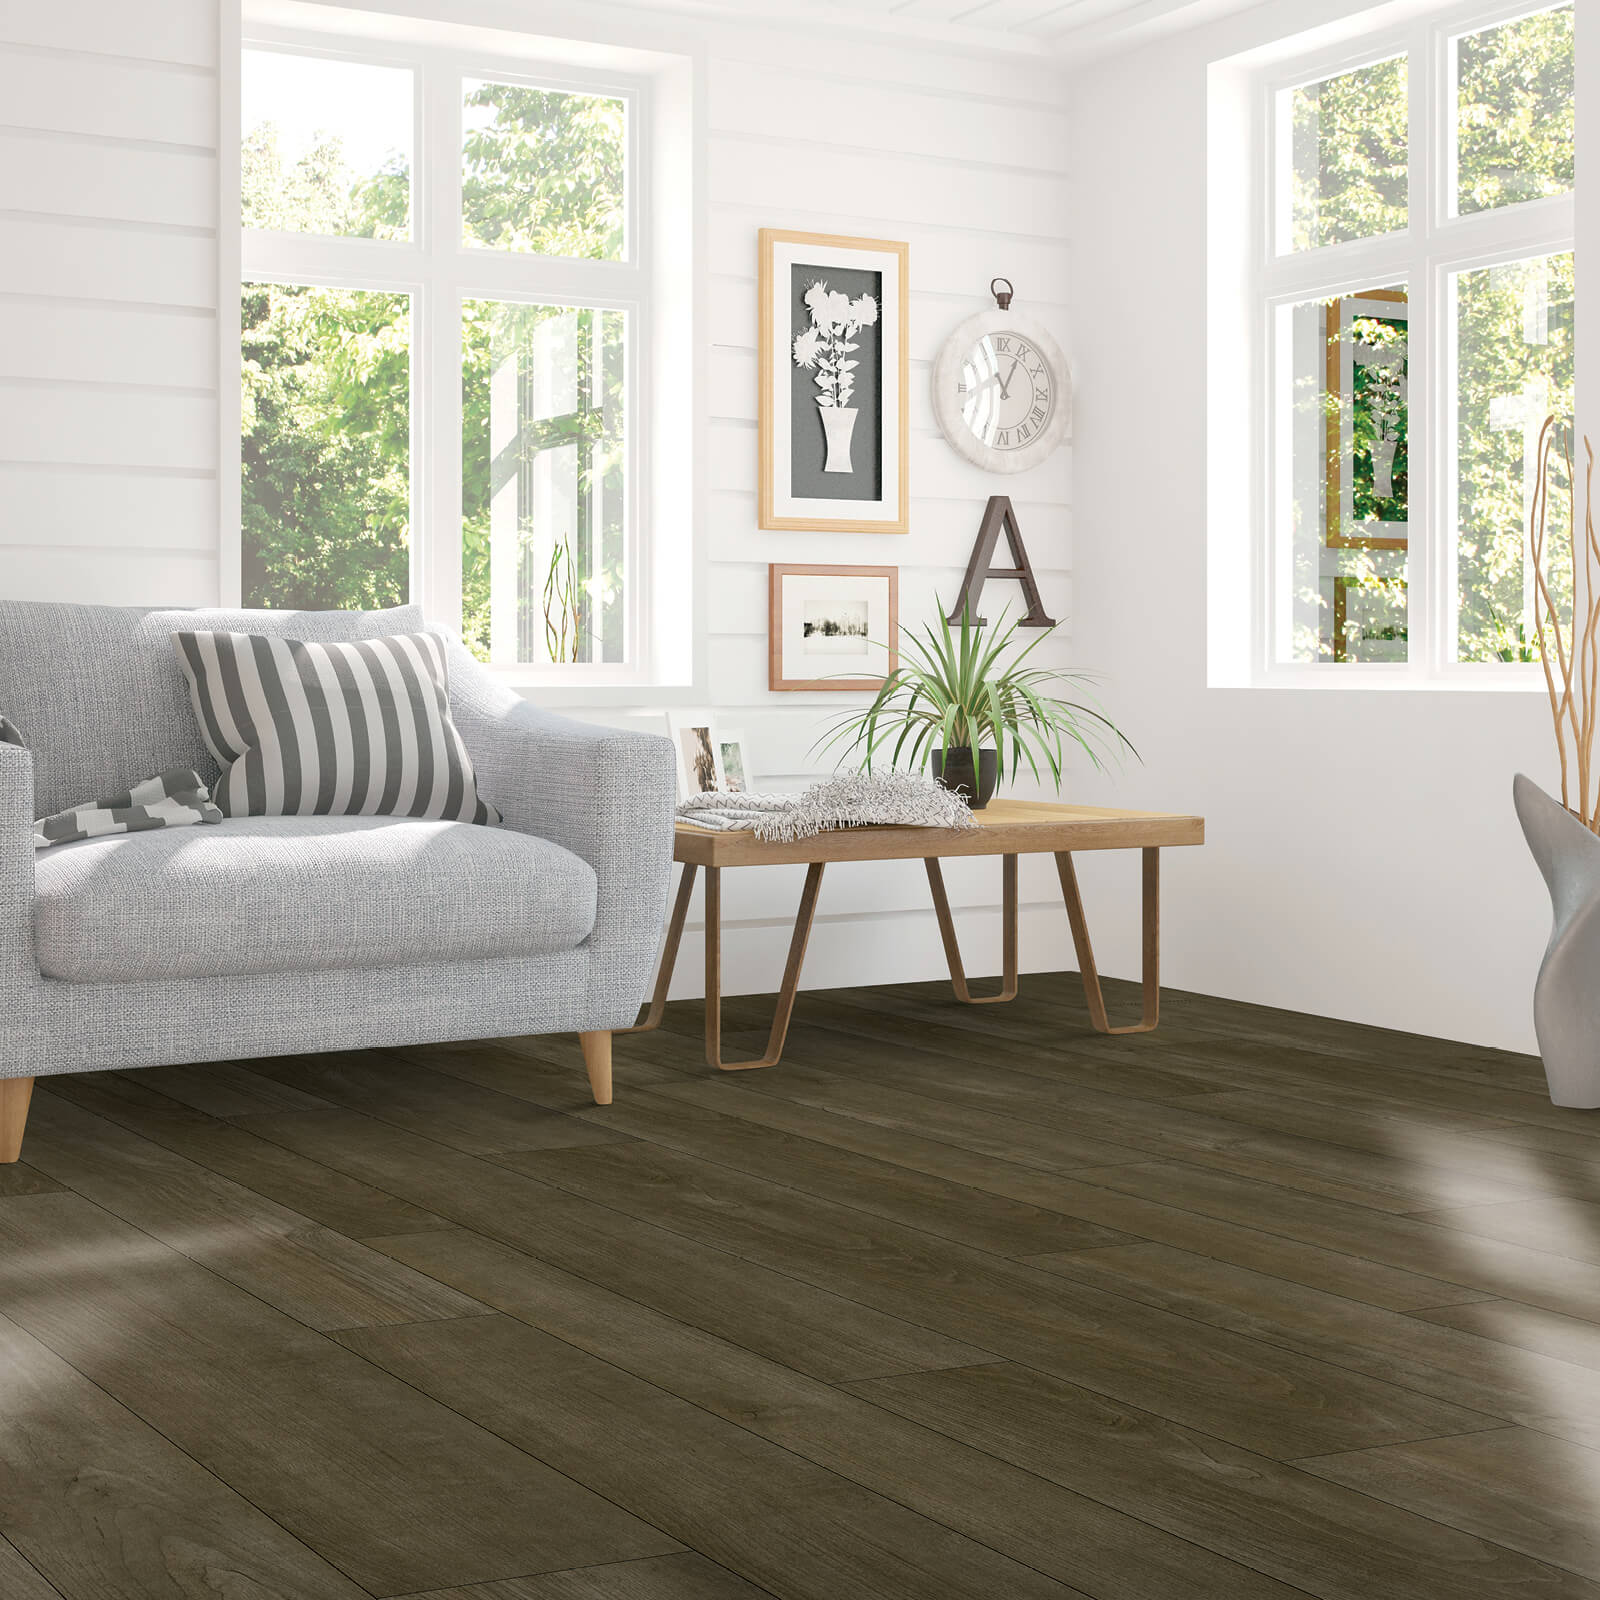 Pergo flooring in living room | Hughes Floor Coverings Inc